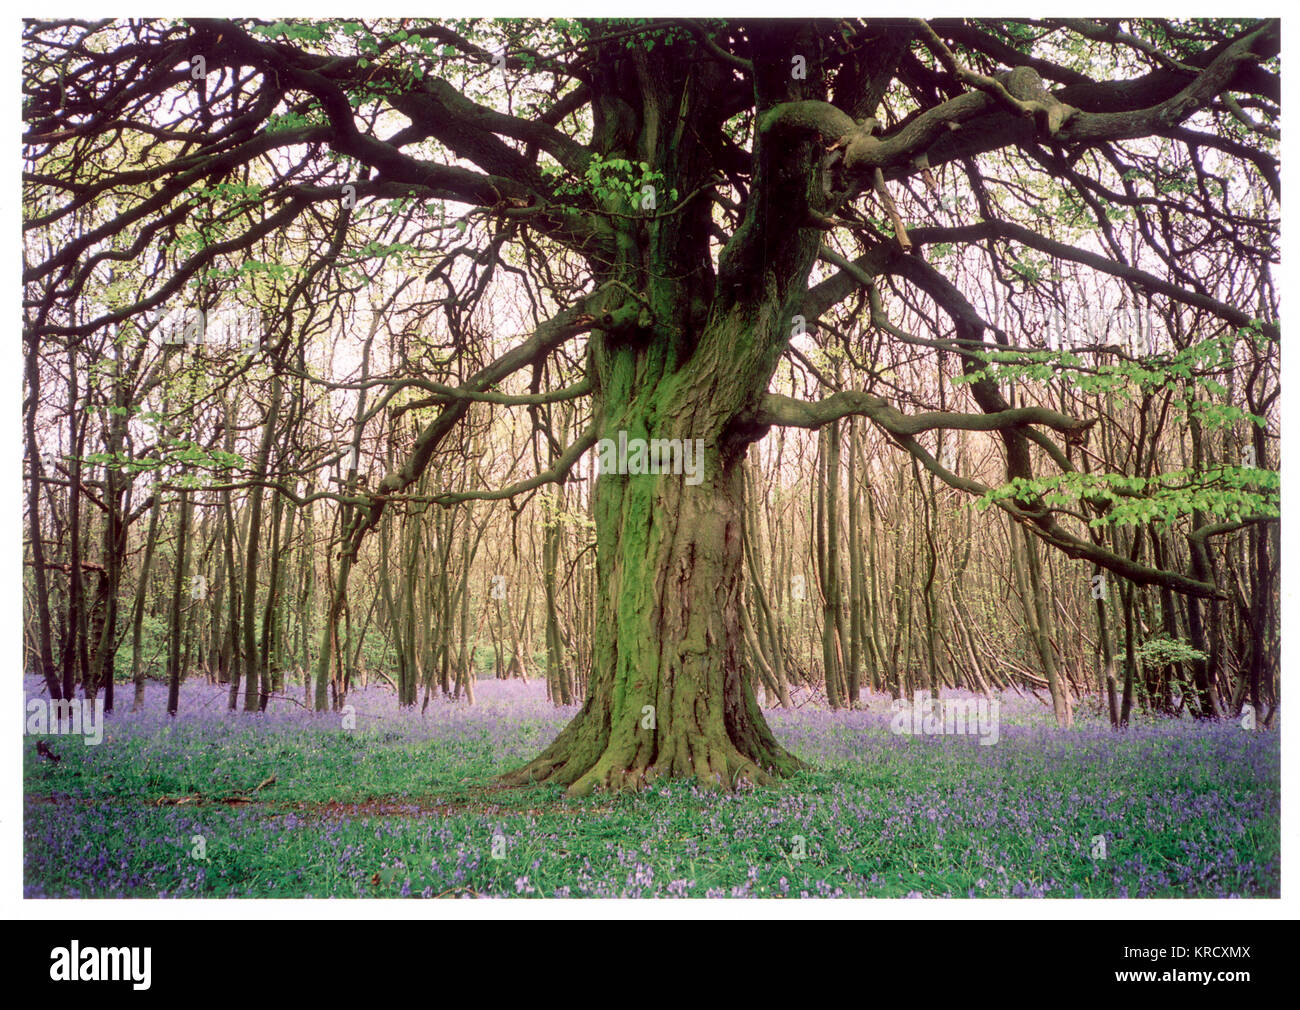 A gnarled ancient tree stands  alone in a circular clearing  surrounded by coppiced trees.  A carpet of fragrant - Stock Image